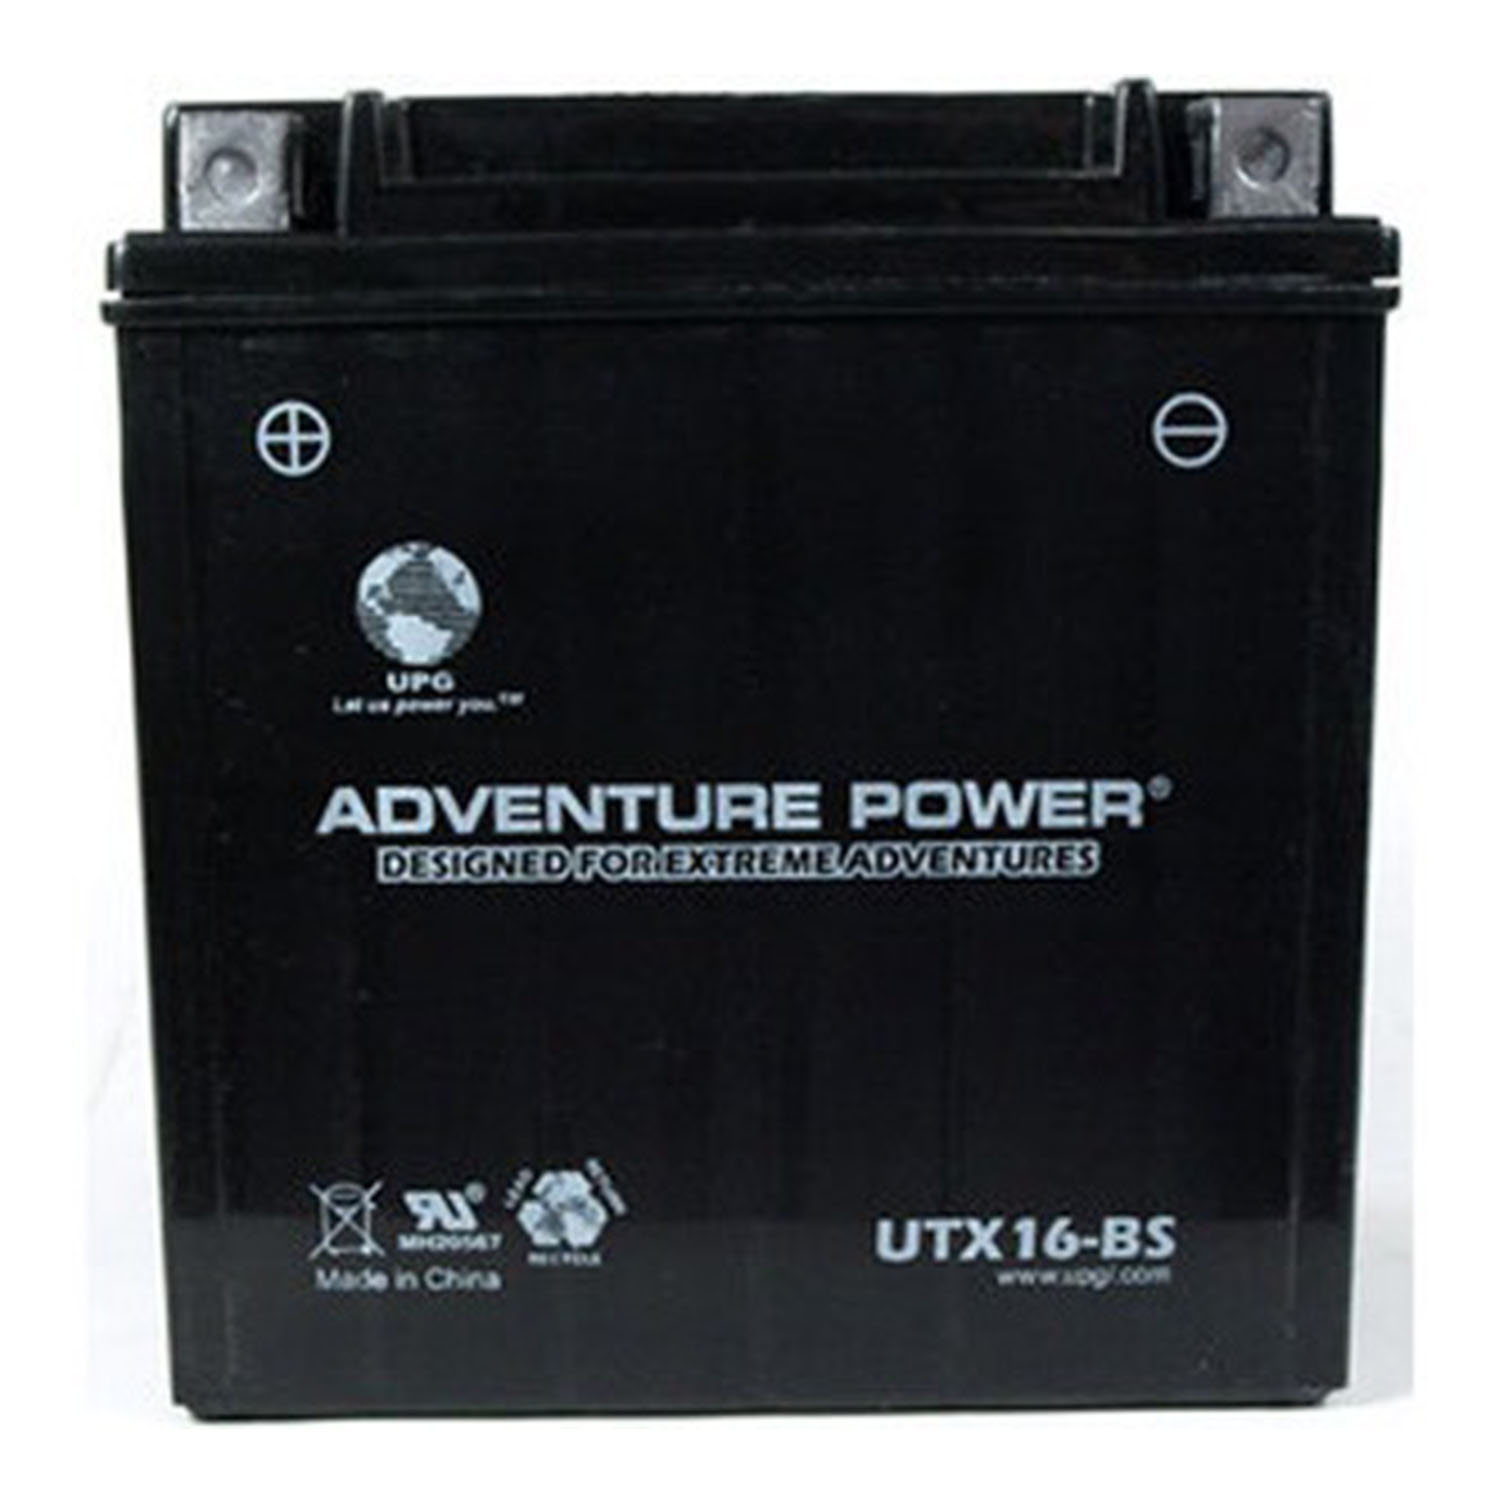 UTX16-BS 12V 14AH Battery for Suzuki 1400 VS1400 GLP 1987-2009